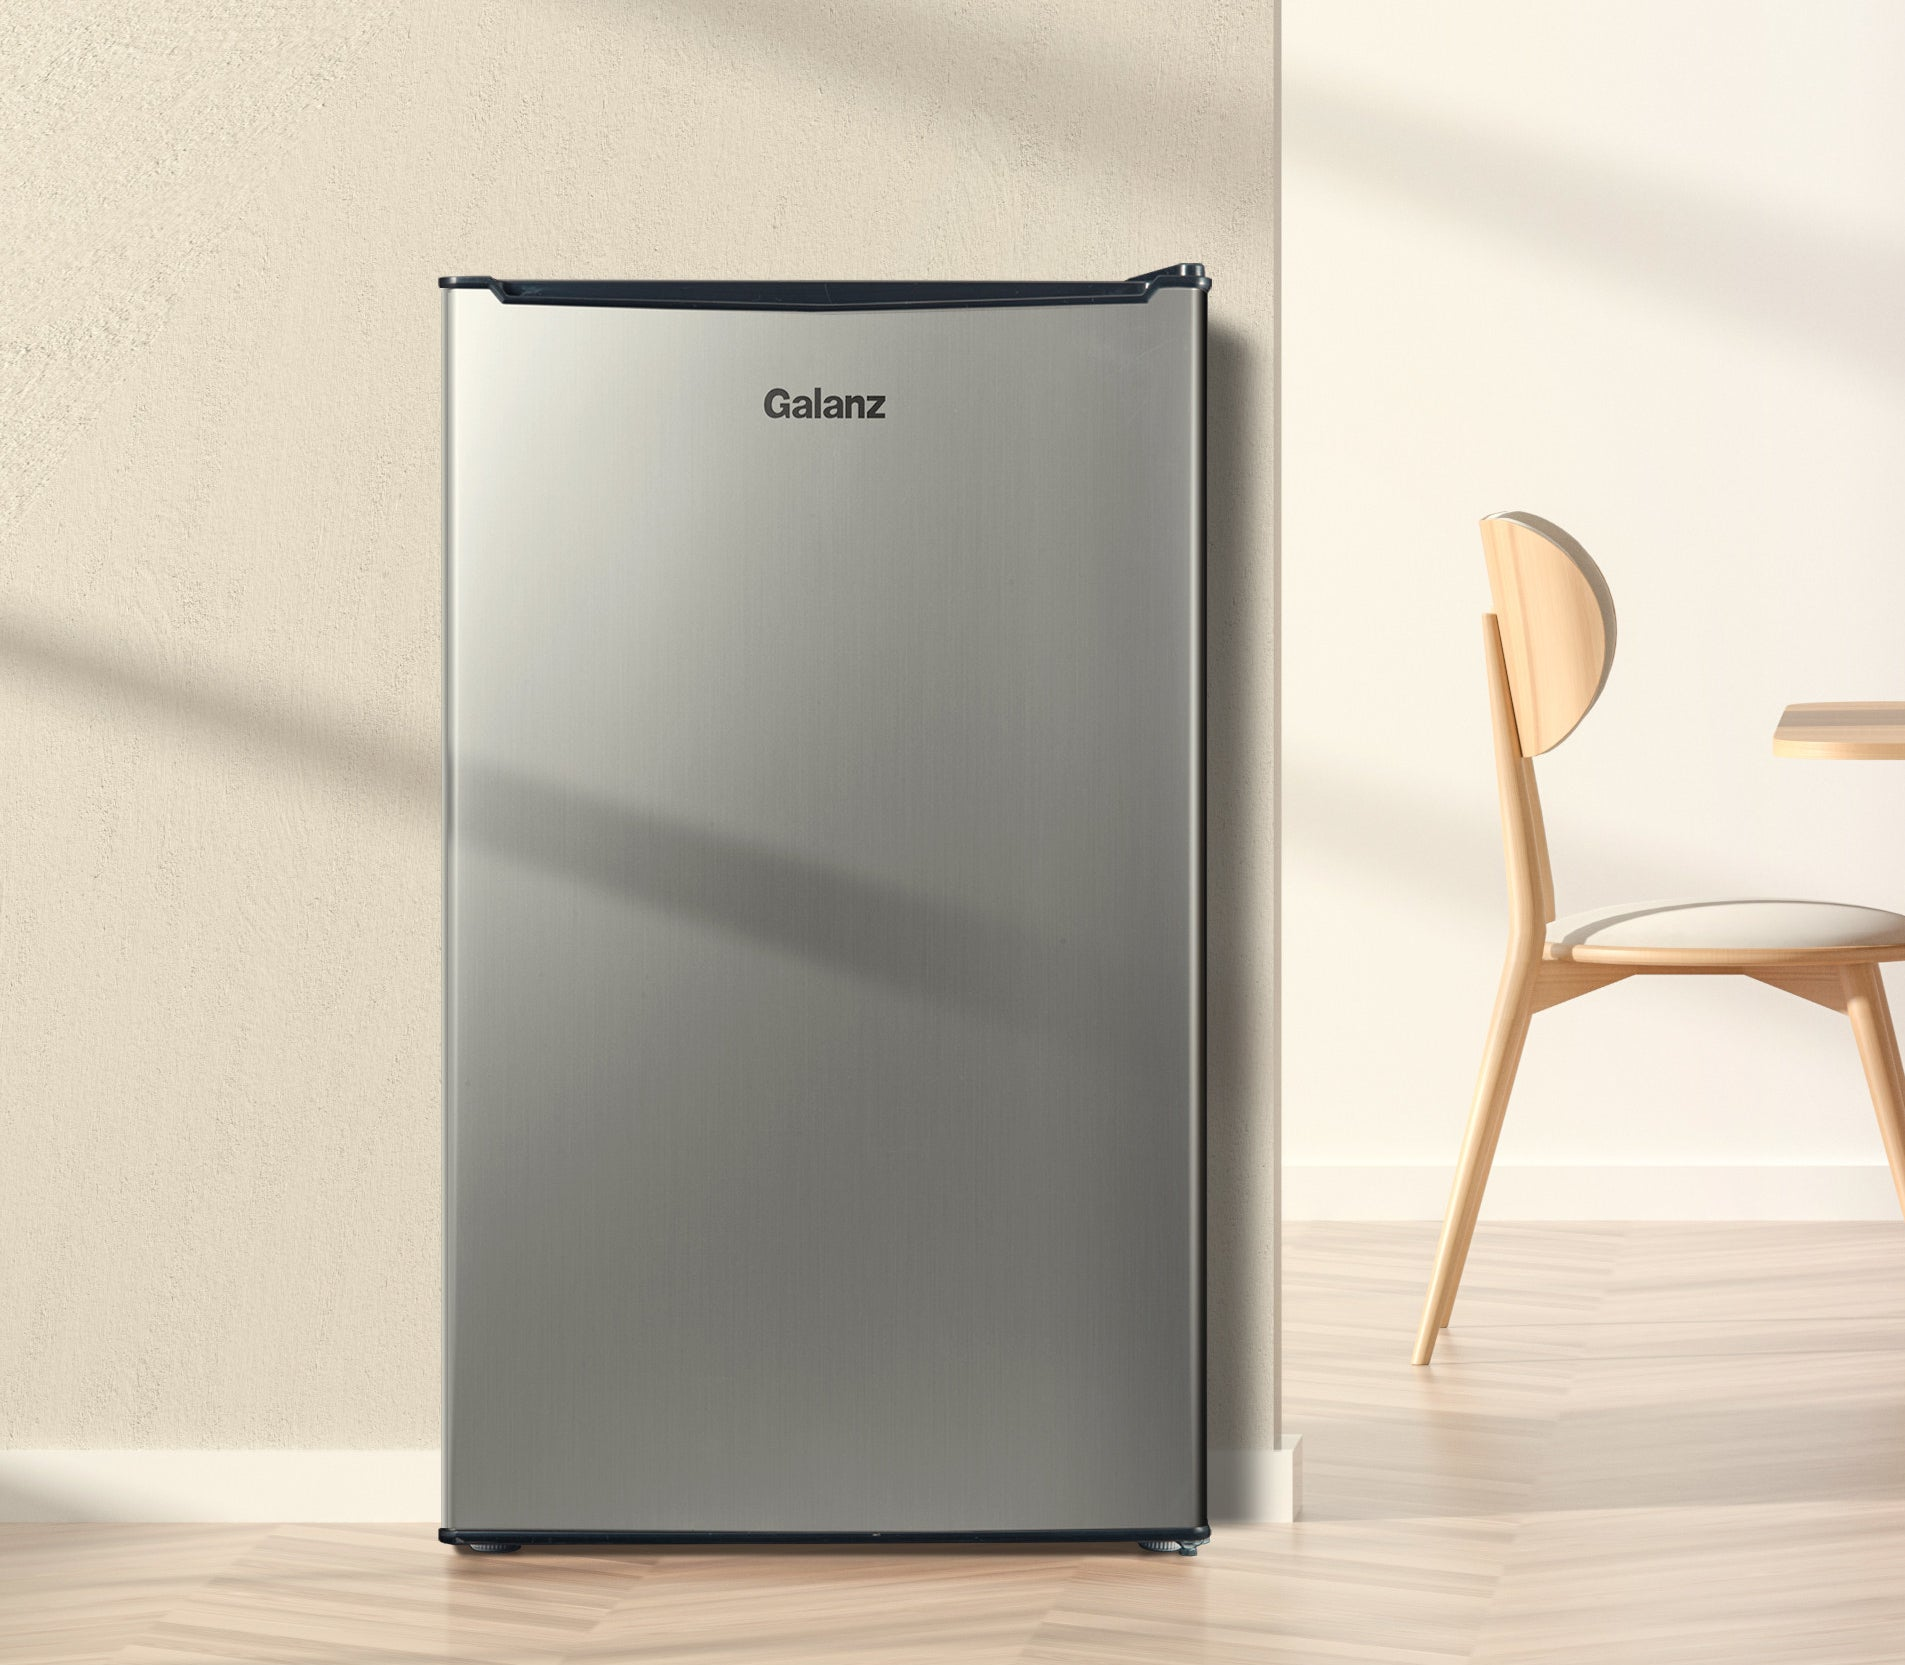 galanz stainless steel mini fridge